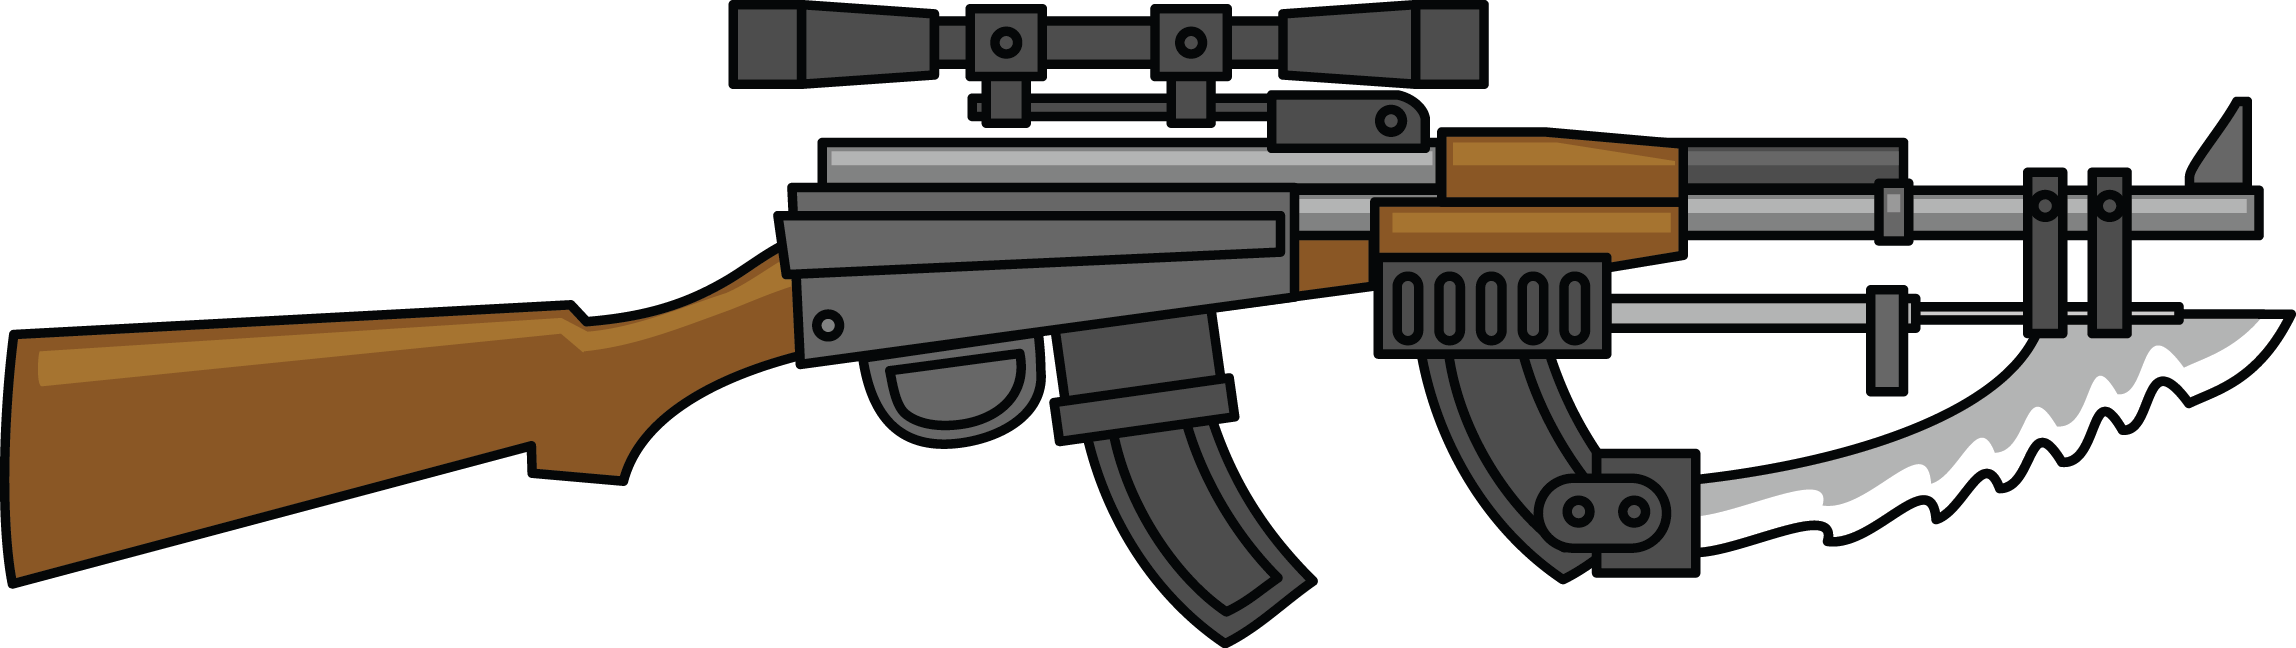 Free To Use Guns Clip art of Gun Clipart #1563 — Clipartwork.